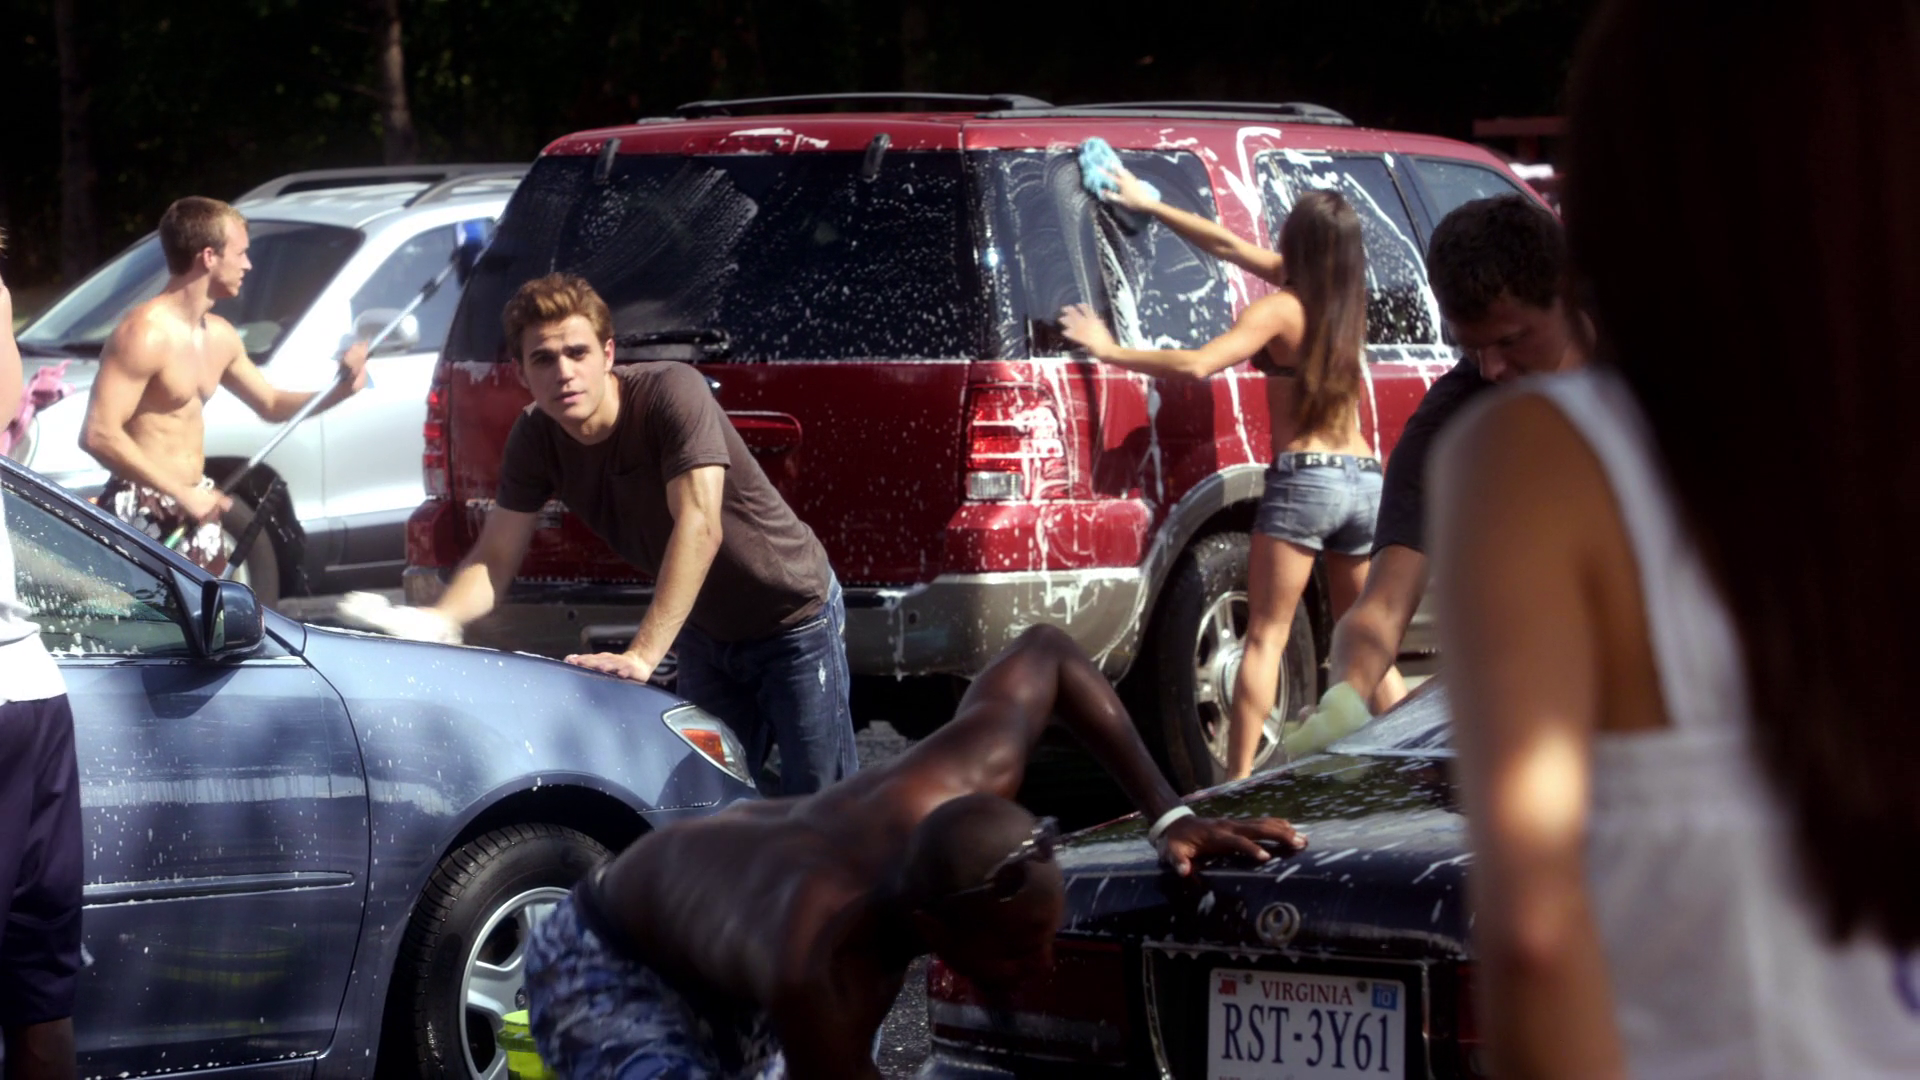 Sexy Car Wash Pics